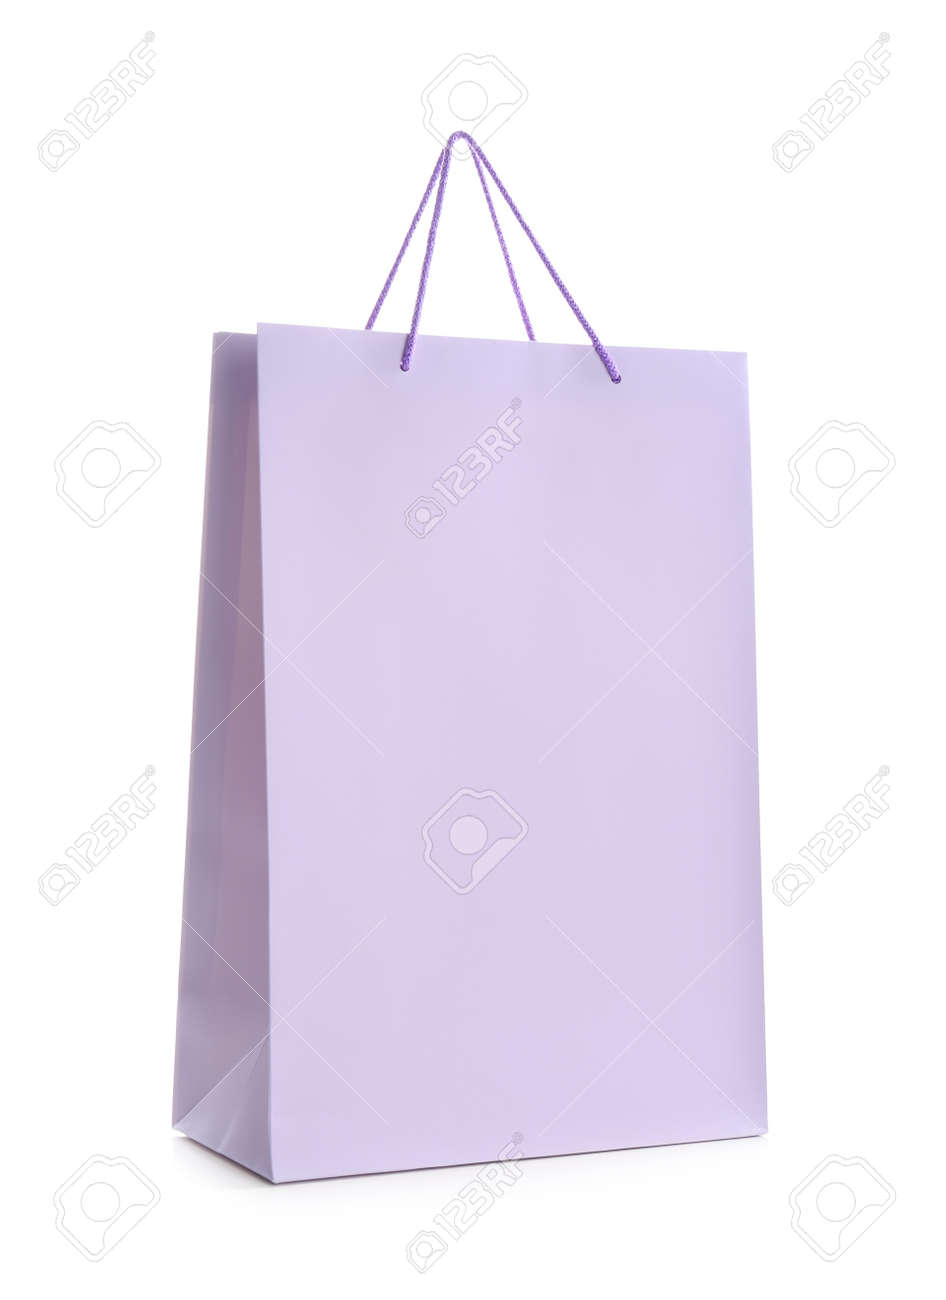 Lilac paper shopping bag isolated on white - 156939294